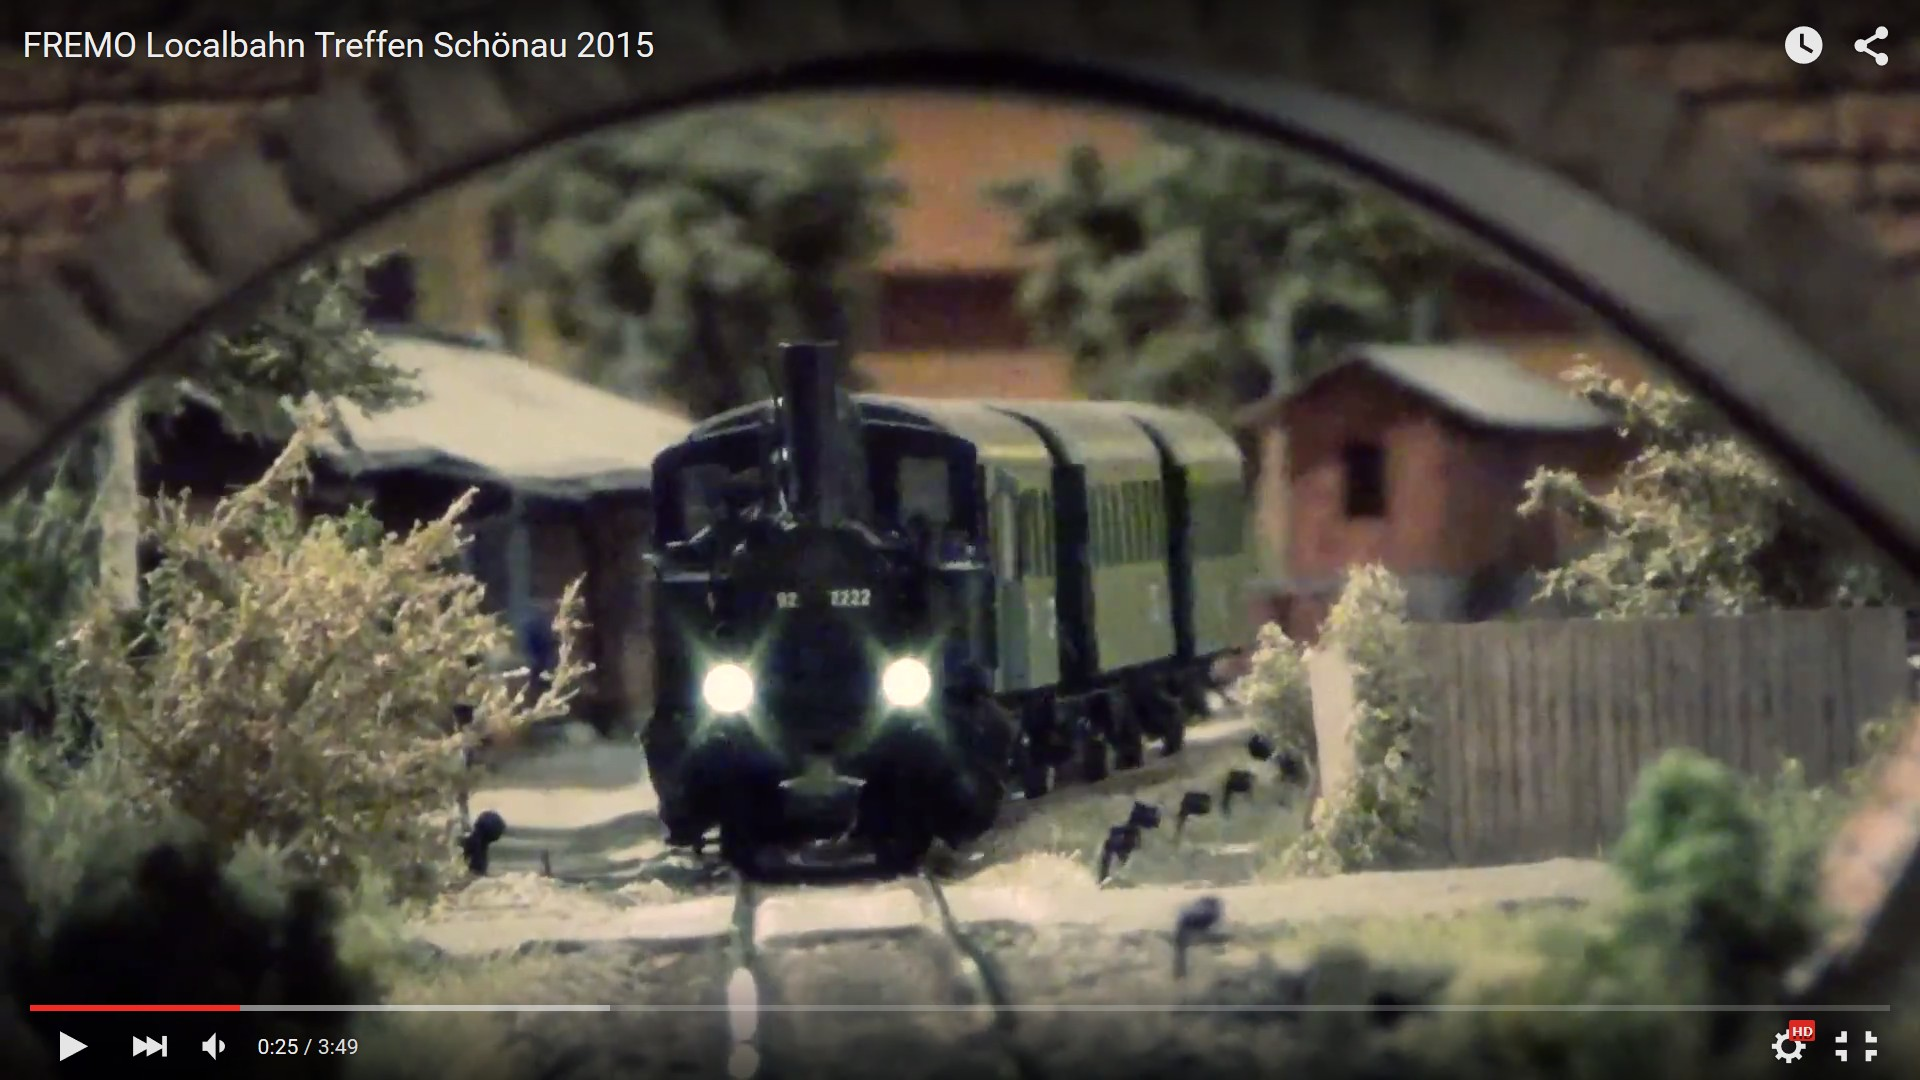 fremo_localbahn_schoenau_2015_Video